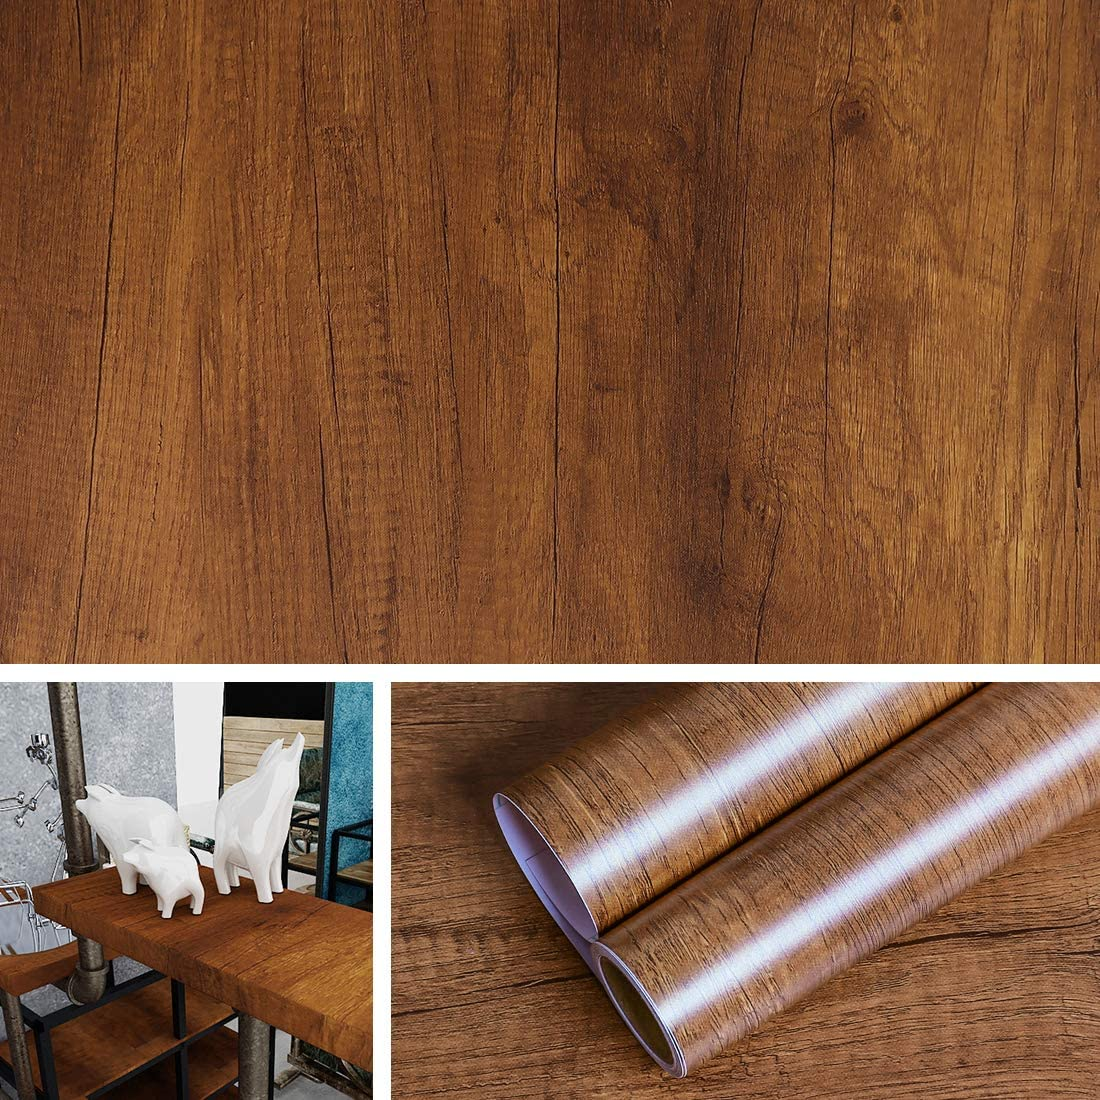 Livelynine Peel and Stick Wallpaper Wood Contact Paper Waterproof Removable Wall Paper Decorations Kitchen Cabinets Old Furniture Decor Kitchen Counter Top Cover Adhesive Shelf Liner 15.8x78.8 Inch